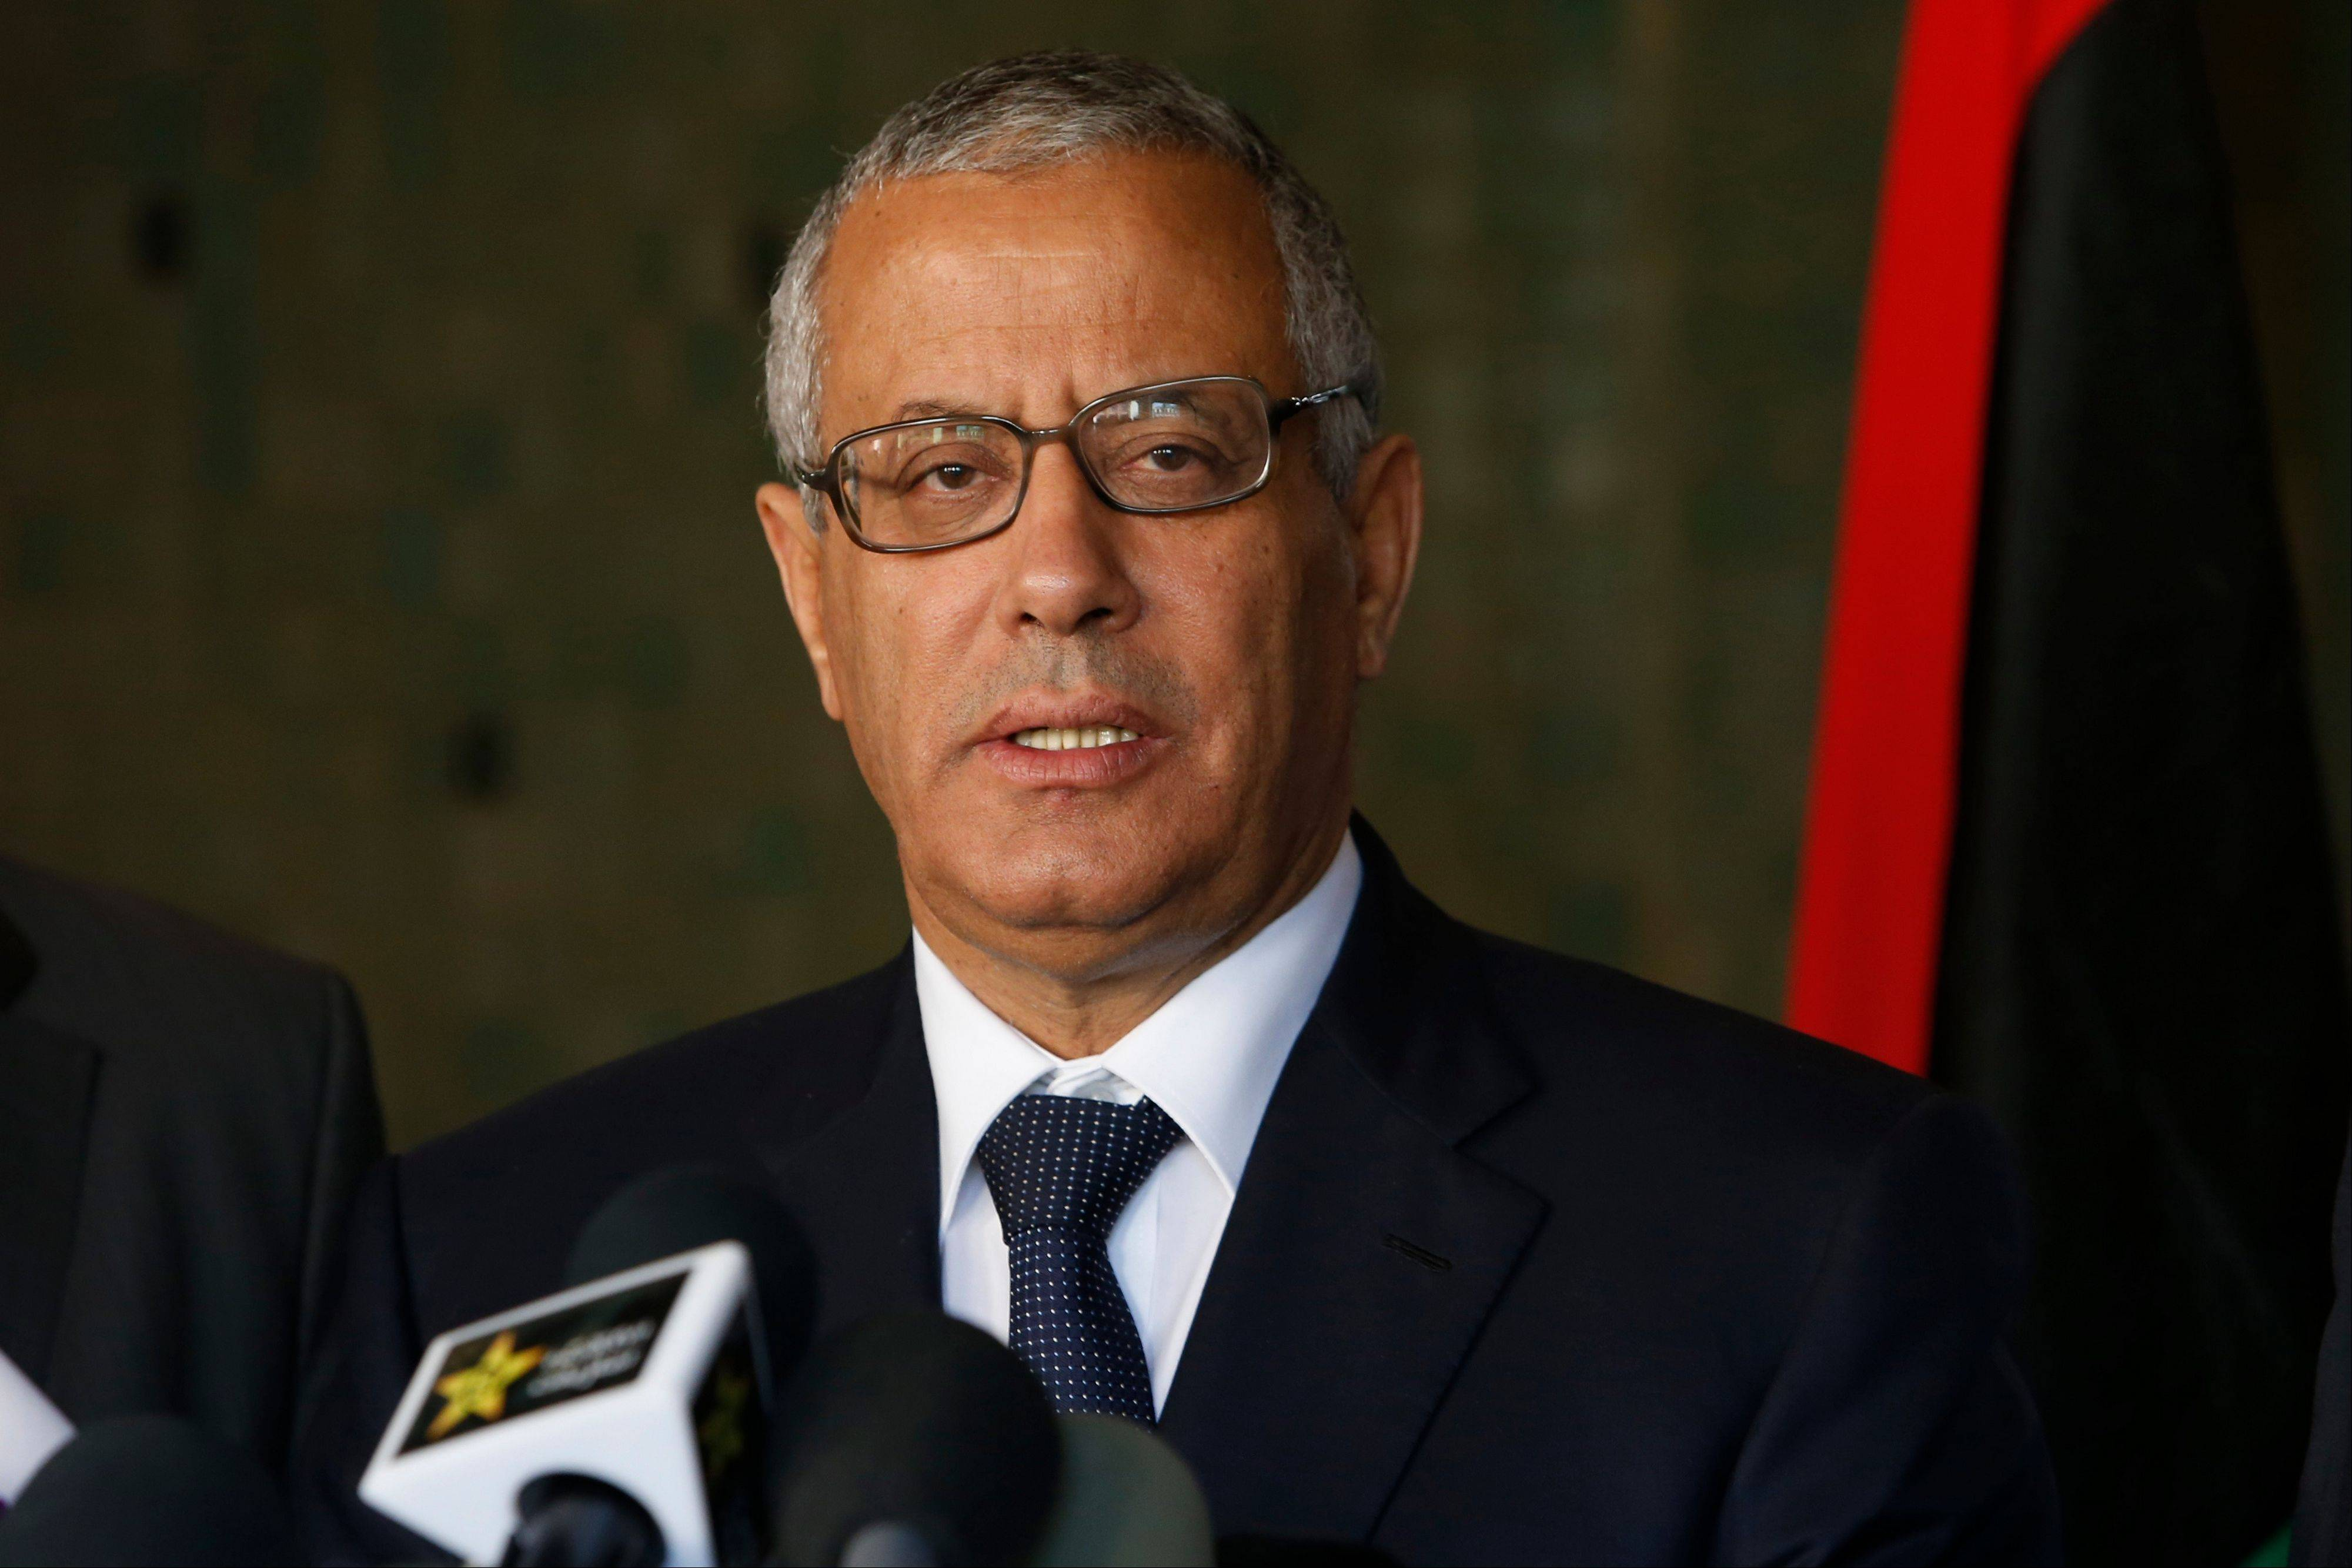 Libyan's Prime Minister Ali Zidan was snatched by gunmen before dawn Thursday from a Tripoli hotel where he resides, the government said. The abduction appeared to be in retaliation for the U.S. special forces' raid over the weekend that seized a Libyan al-Qaida suspect from the streets of the capital.